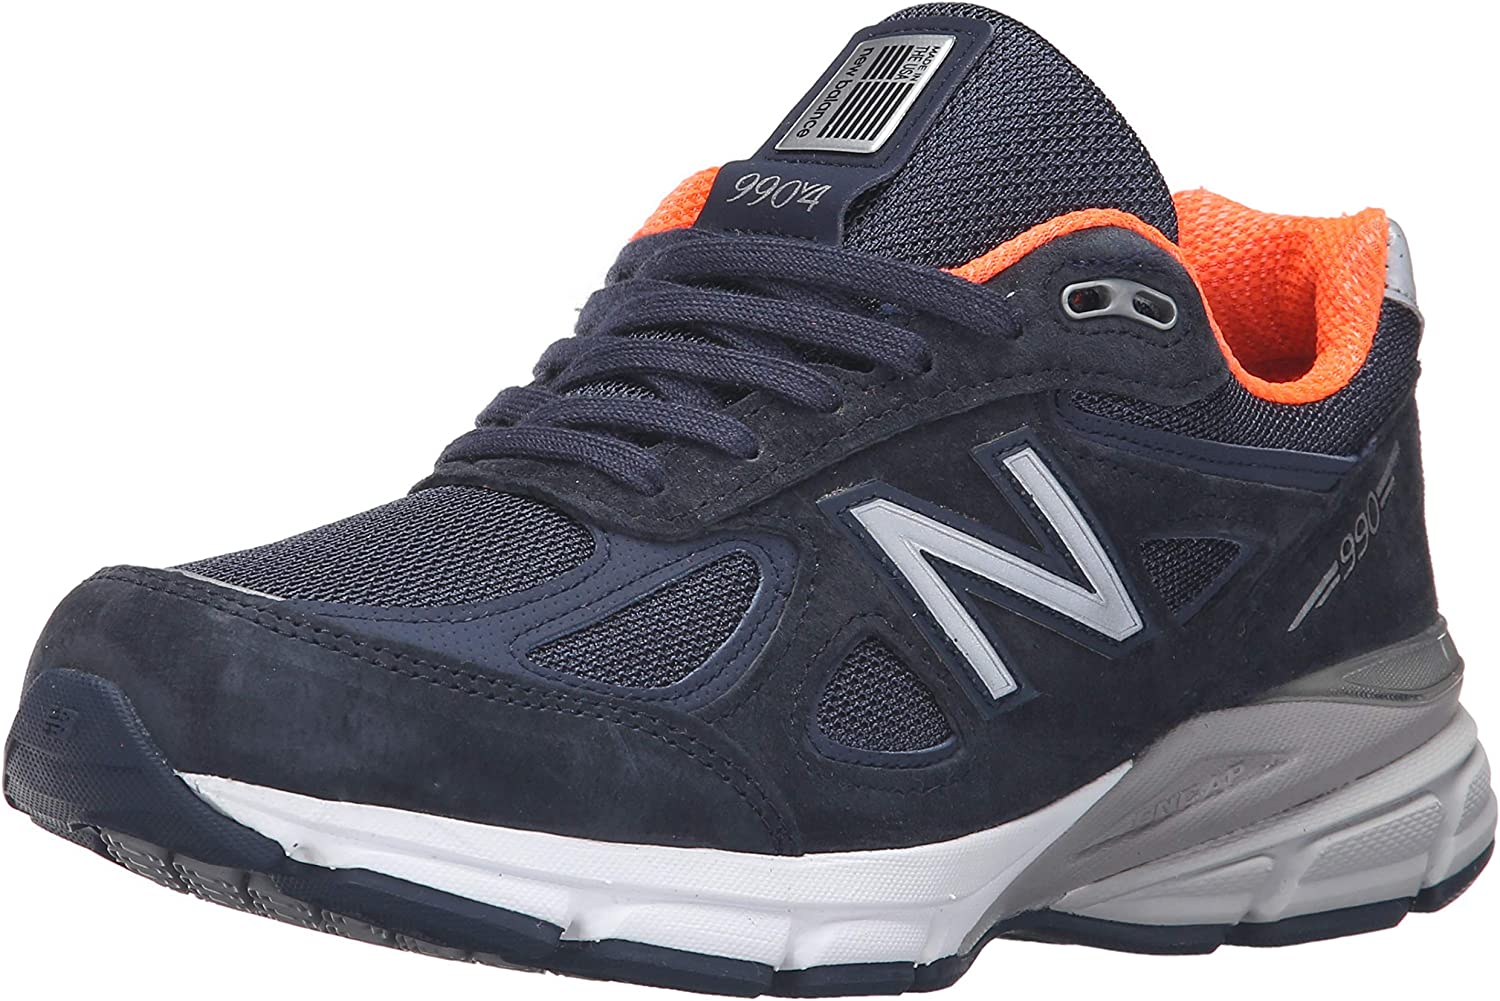 New Balance Women's Made High quality new Max 49% OFF in V4 990 Us Sneaker